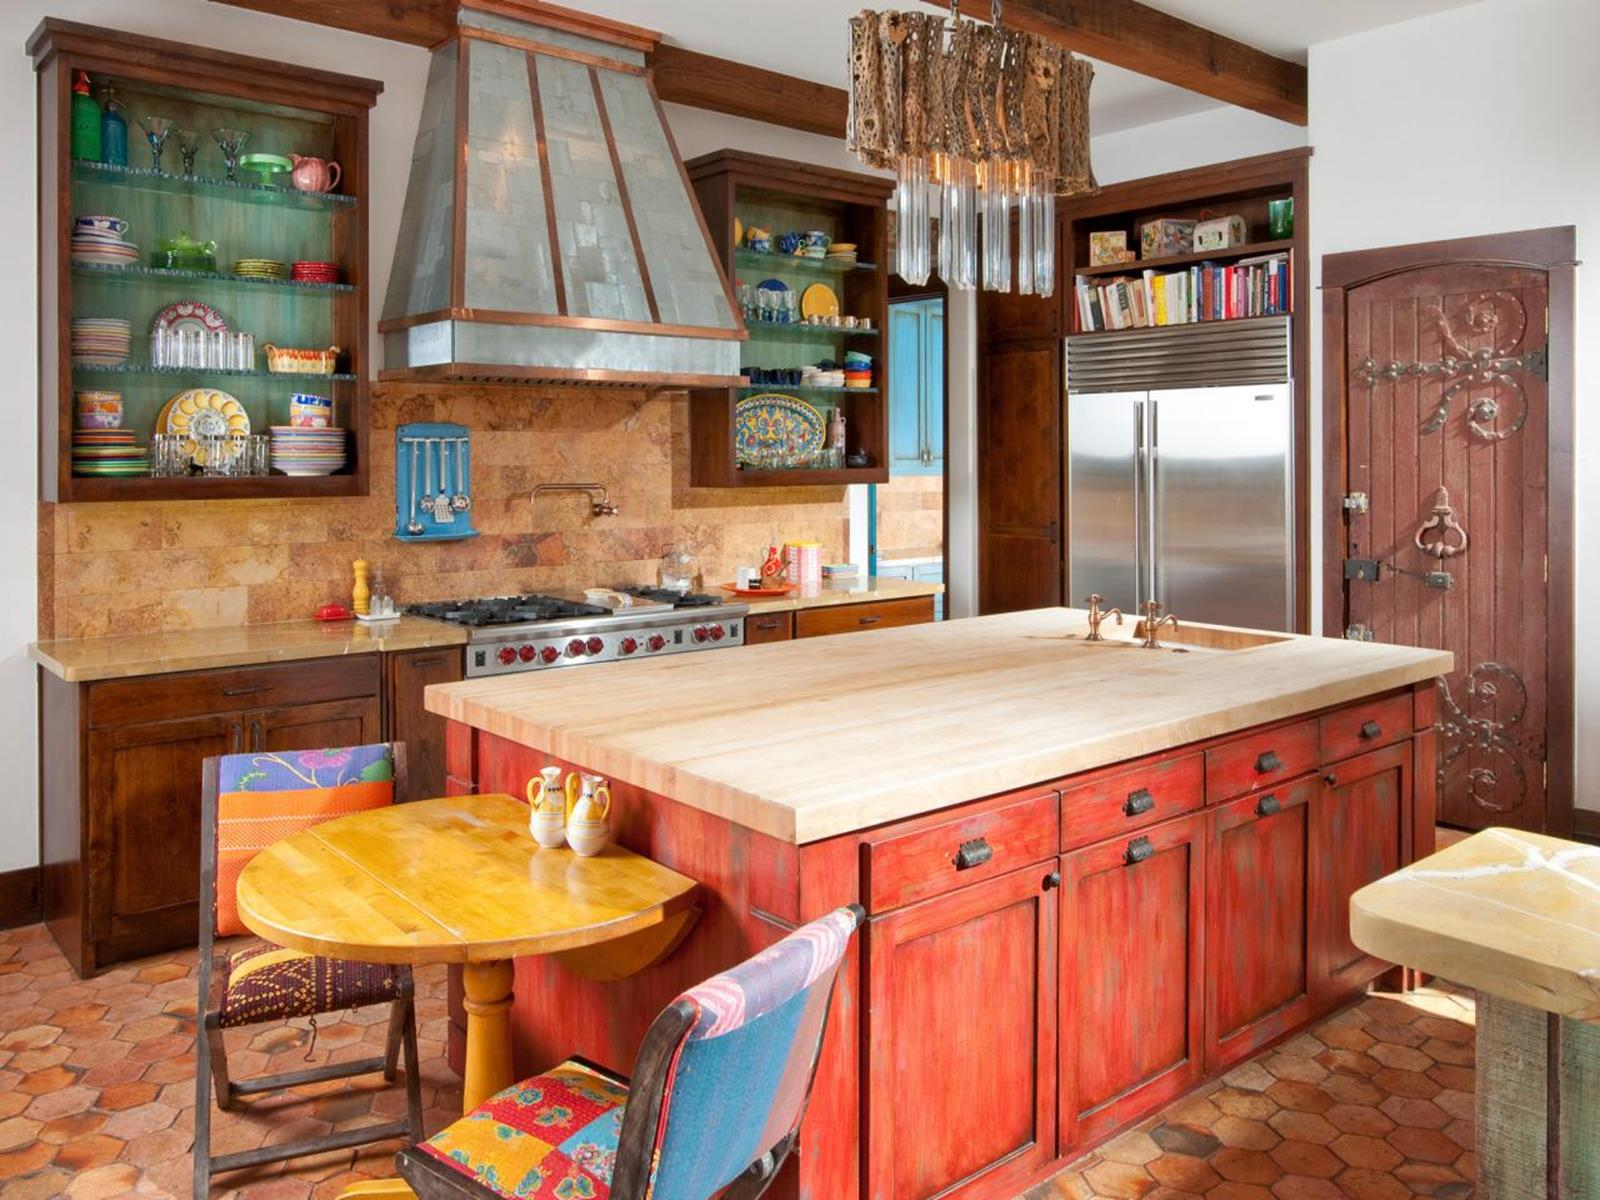 Projects to Make Kitchen More Neat and Beautiful 44